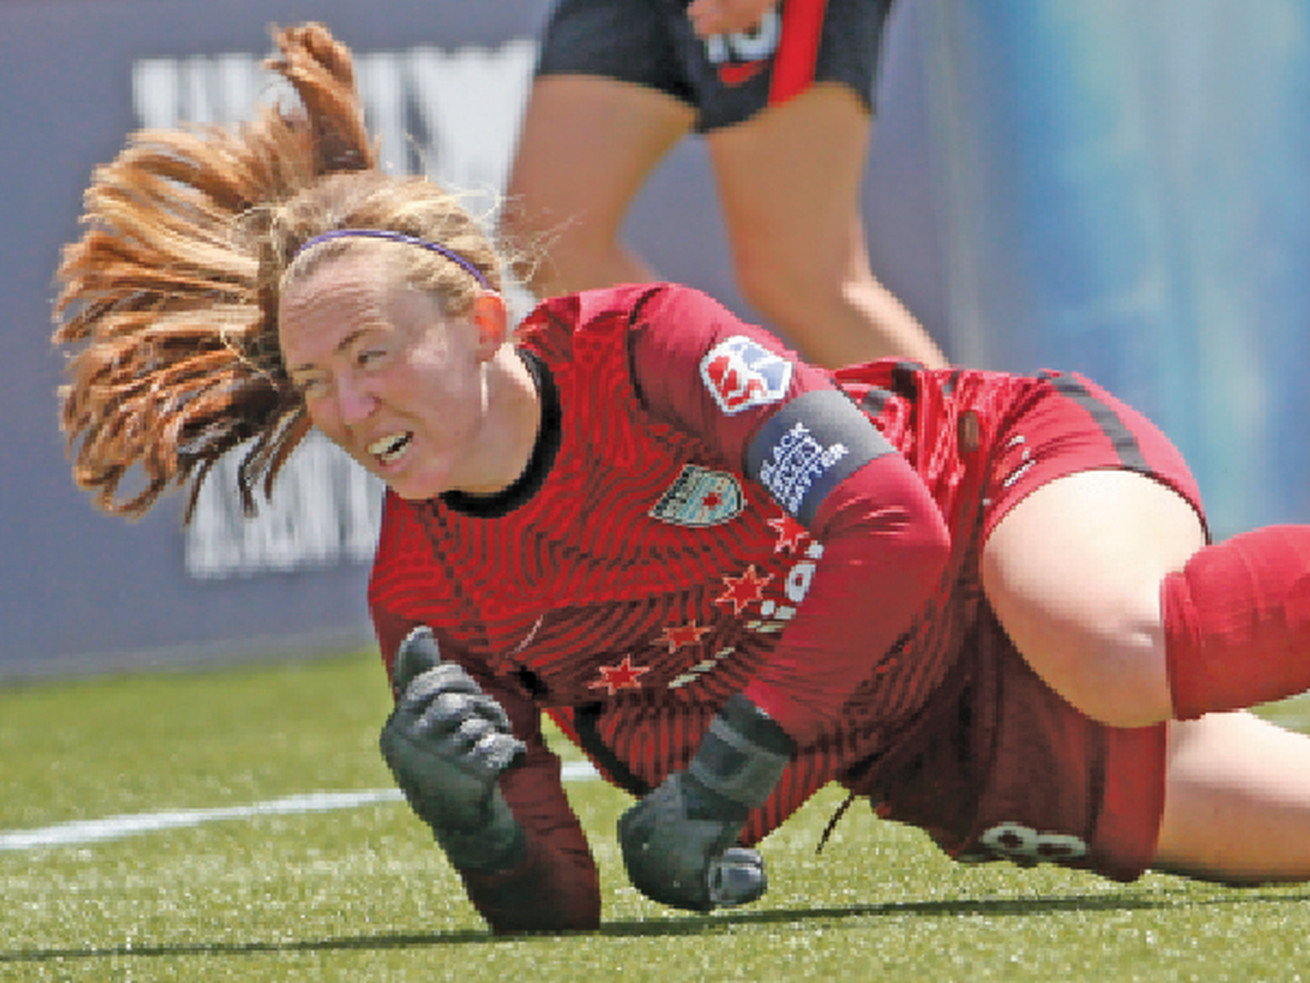 Cassie Miller was in goal for the Red Stars in the first two games of the 2021 Challenge Cup against the Houston Dash and Portland Thorns.